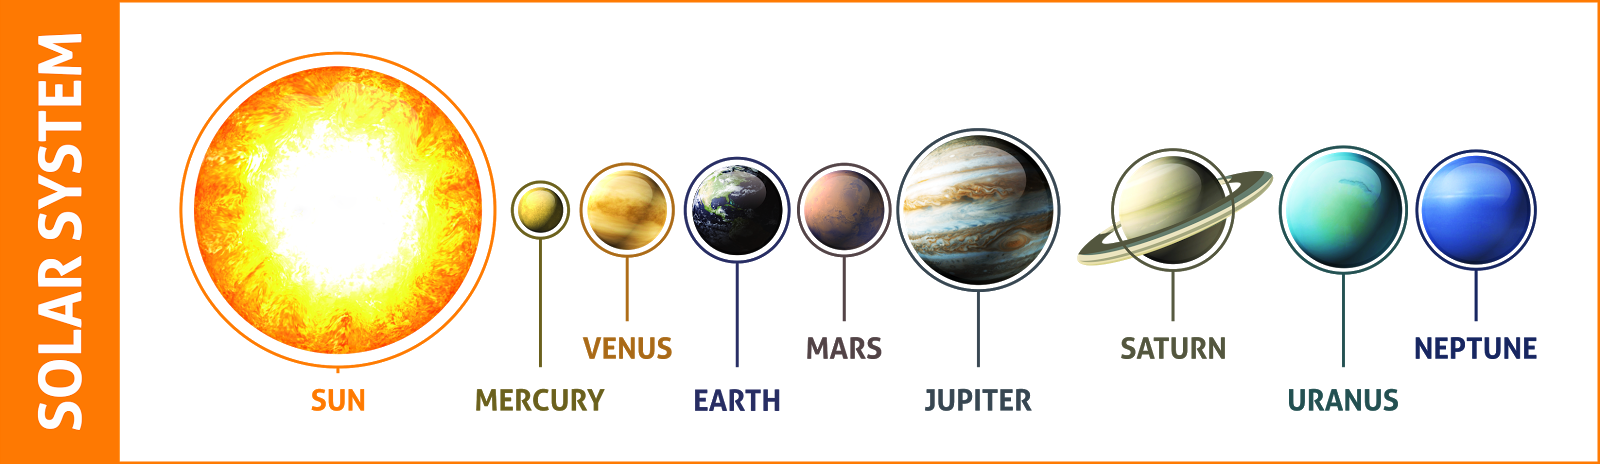 Distance of the Planets (Mercury, Venus, Earth, Mars, Jupiter) from ...